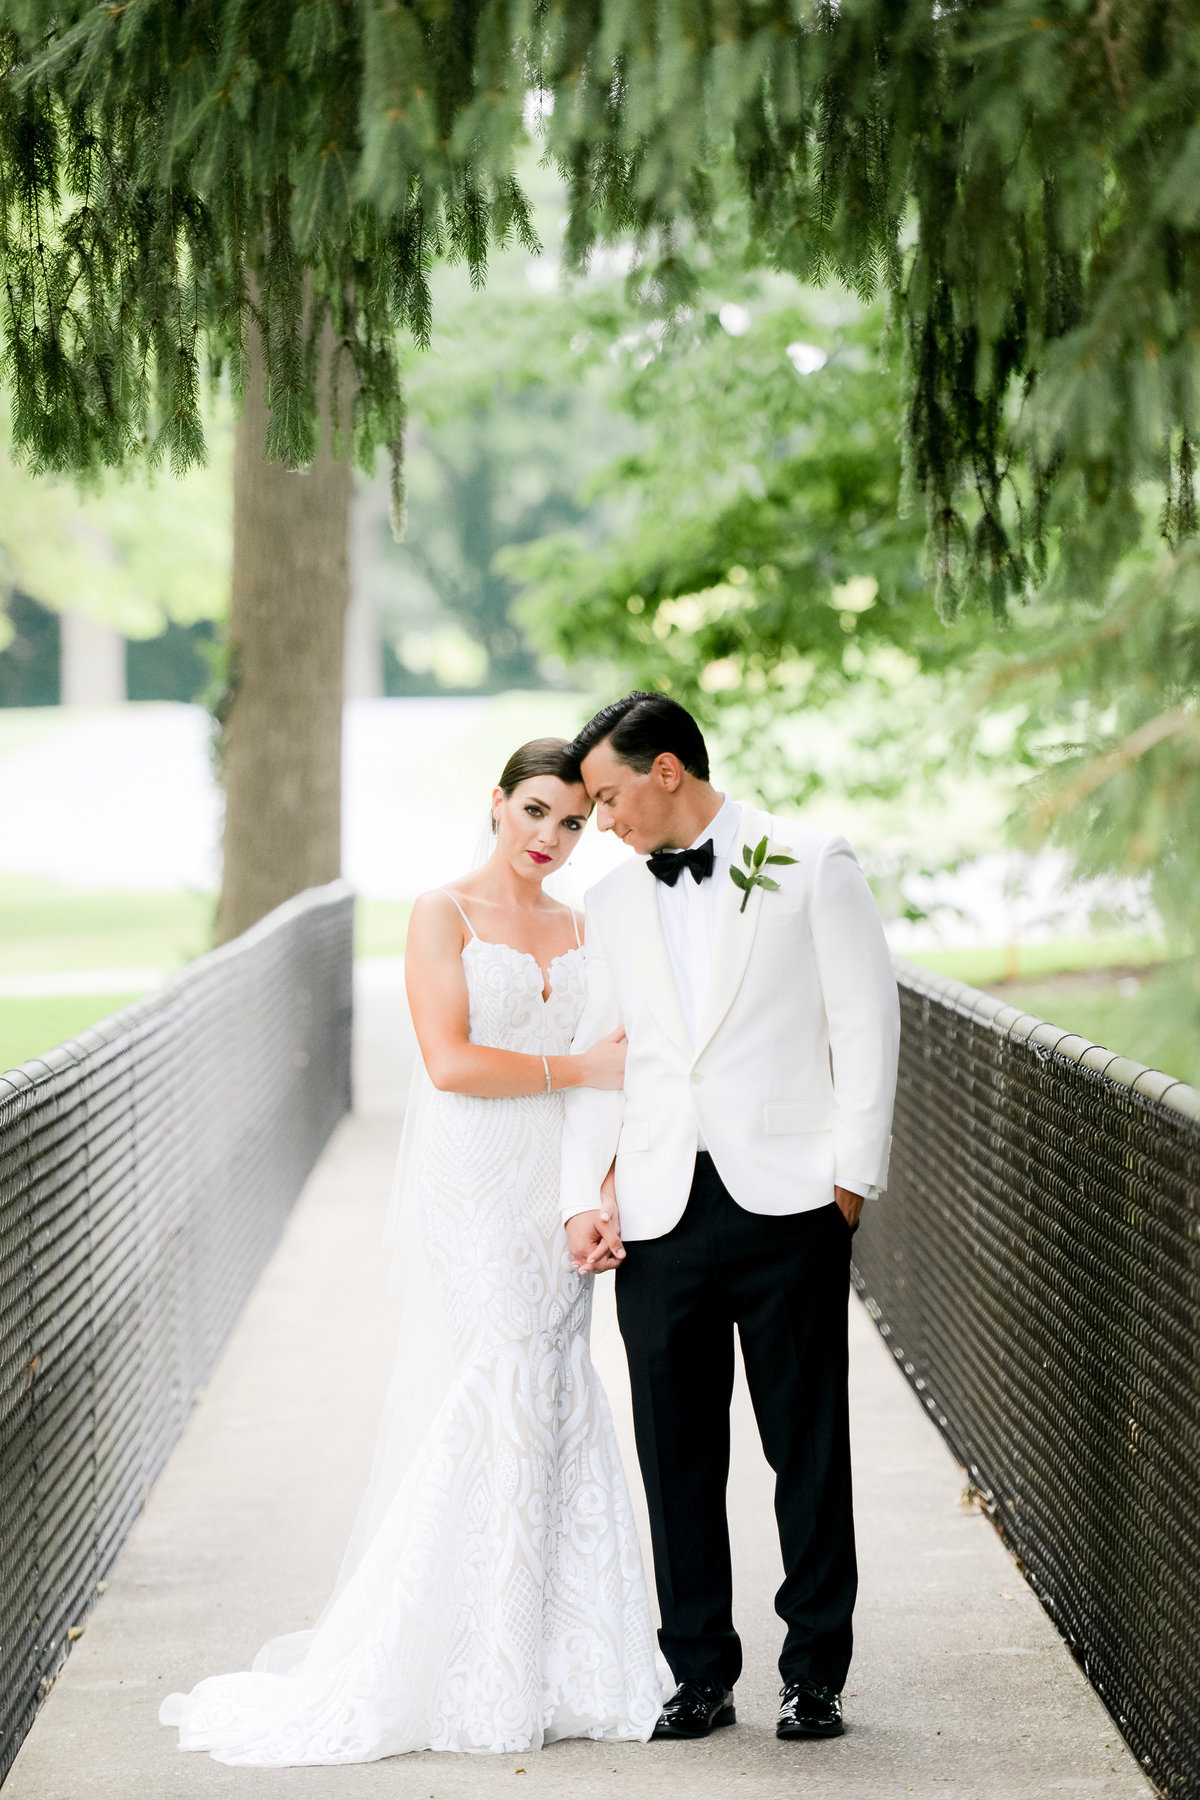 Indianapolis Wedding Photographer | Sara Ackermann Photography-8